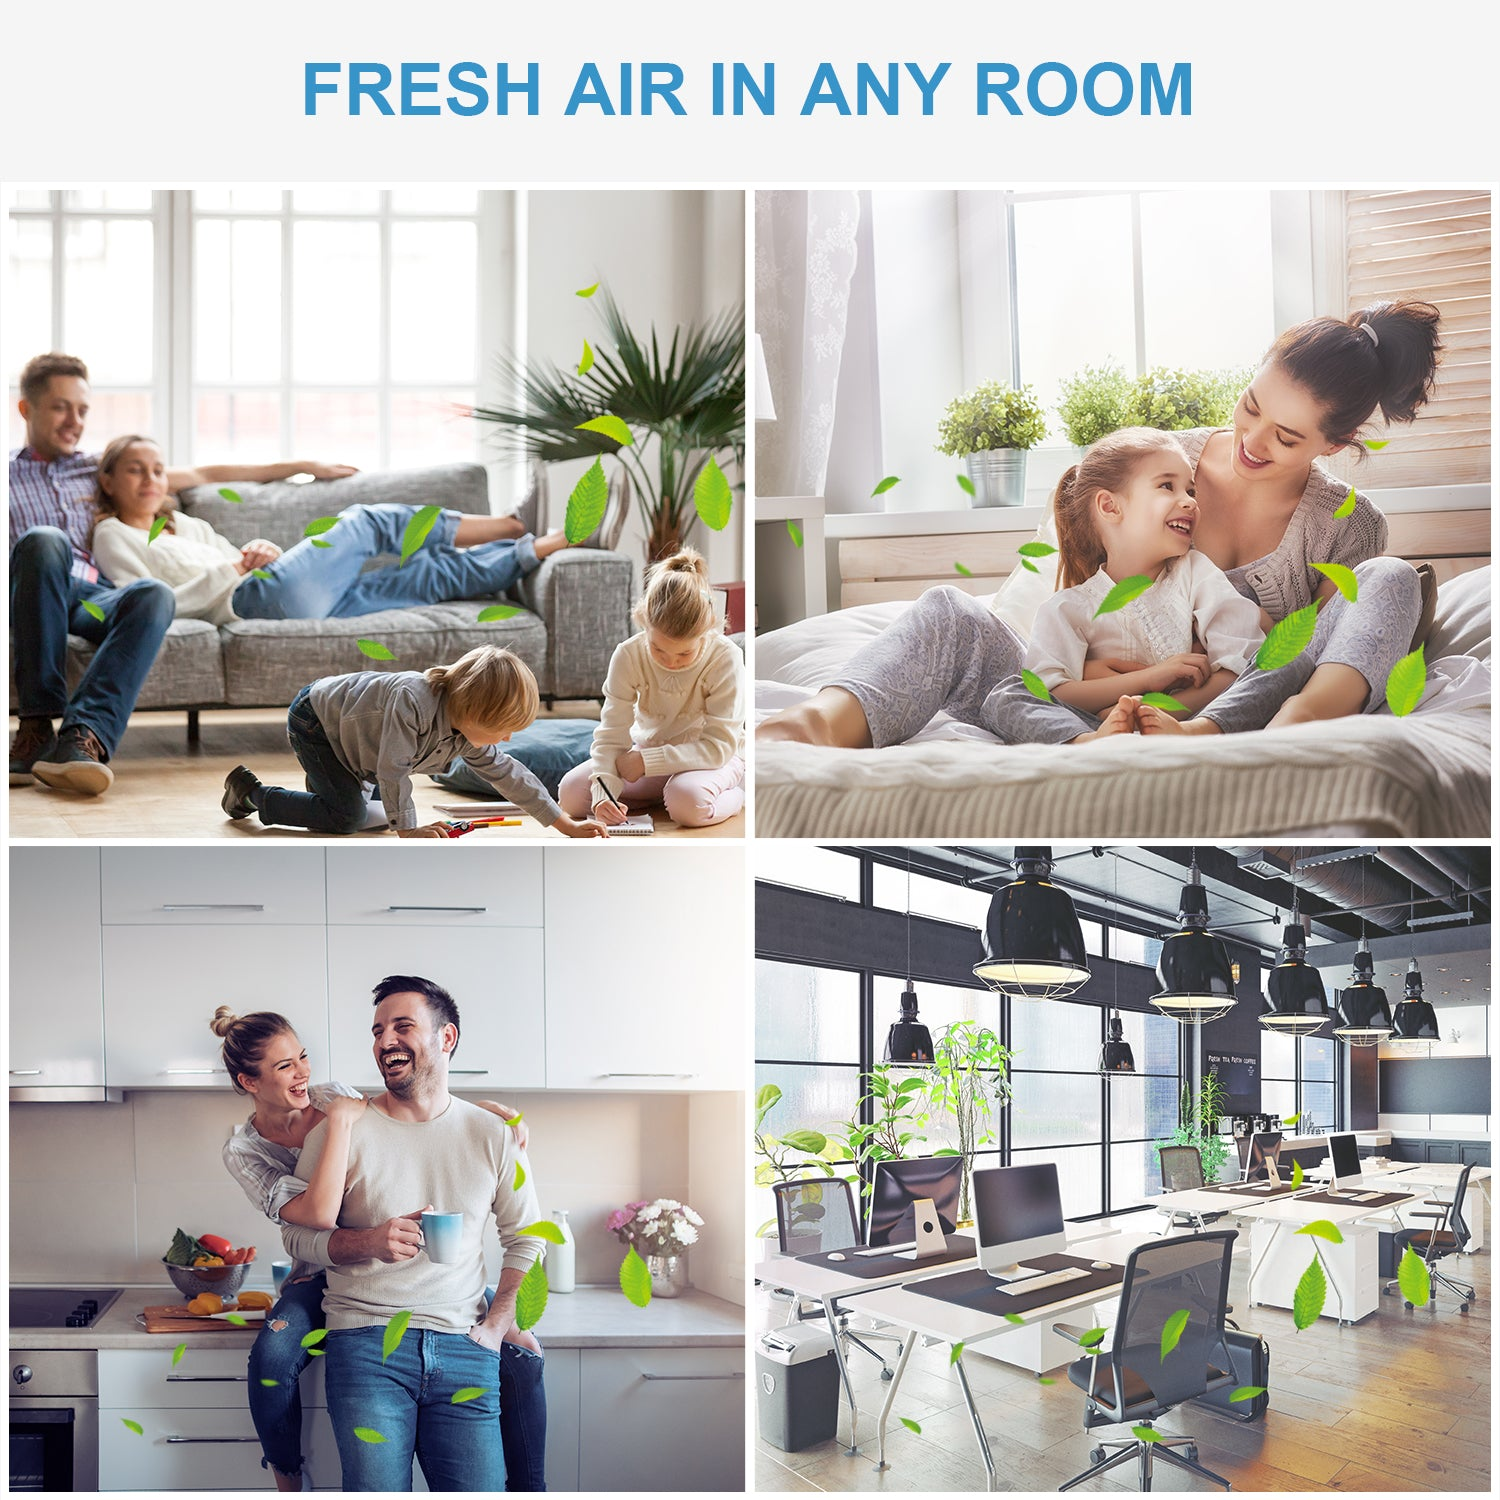 AZEUS KJ120G-C10 High CADR Air Purifier, up to 376ft2, Quiet, Ozone-Free